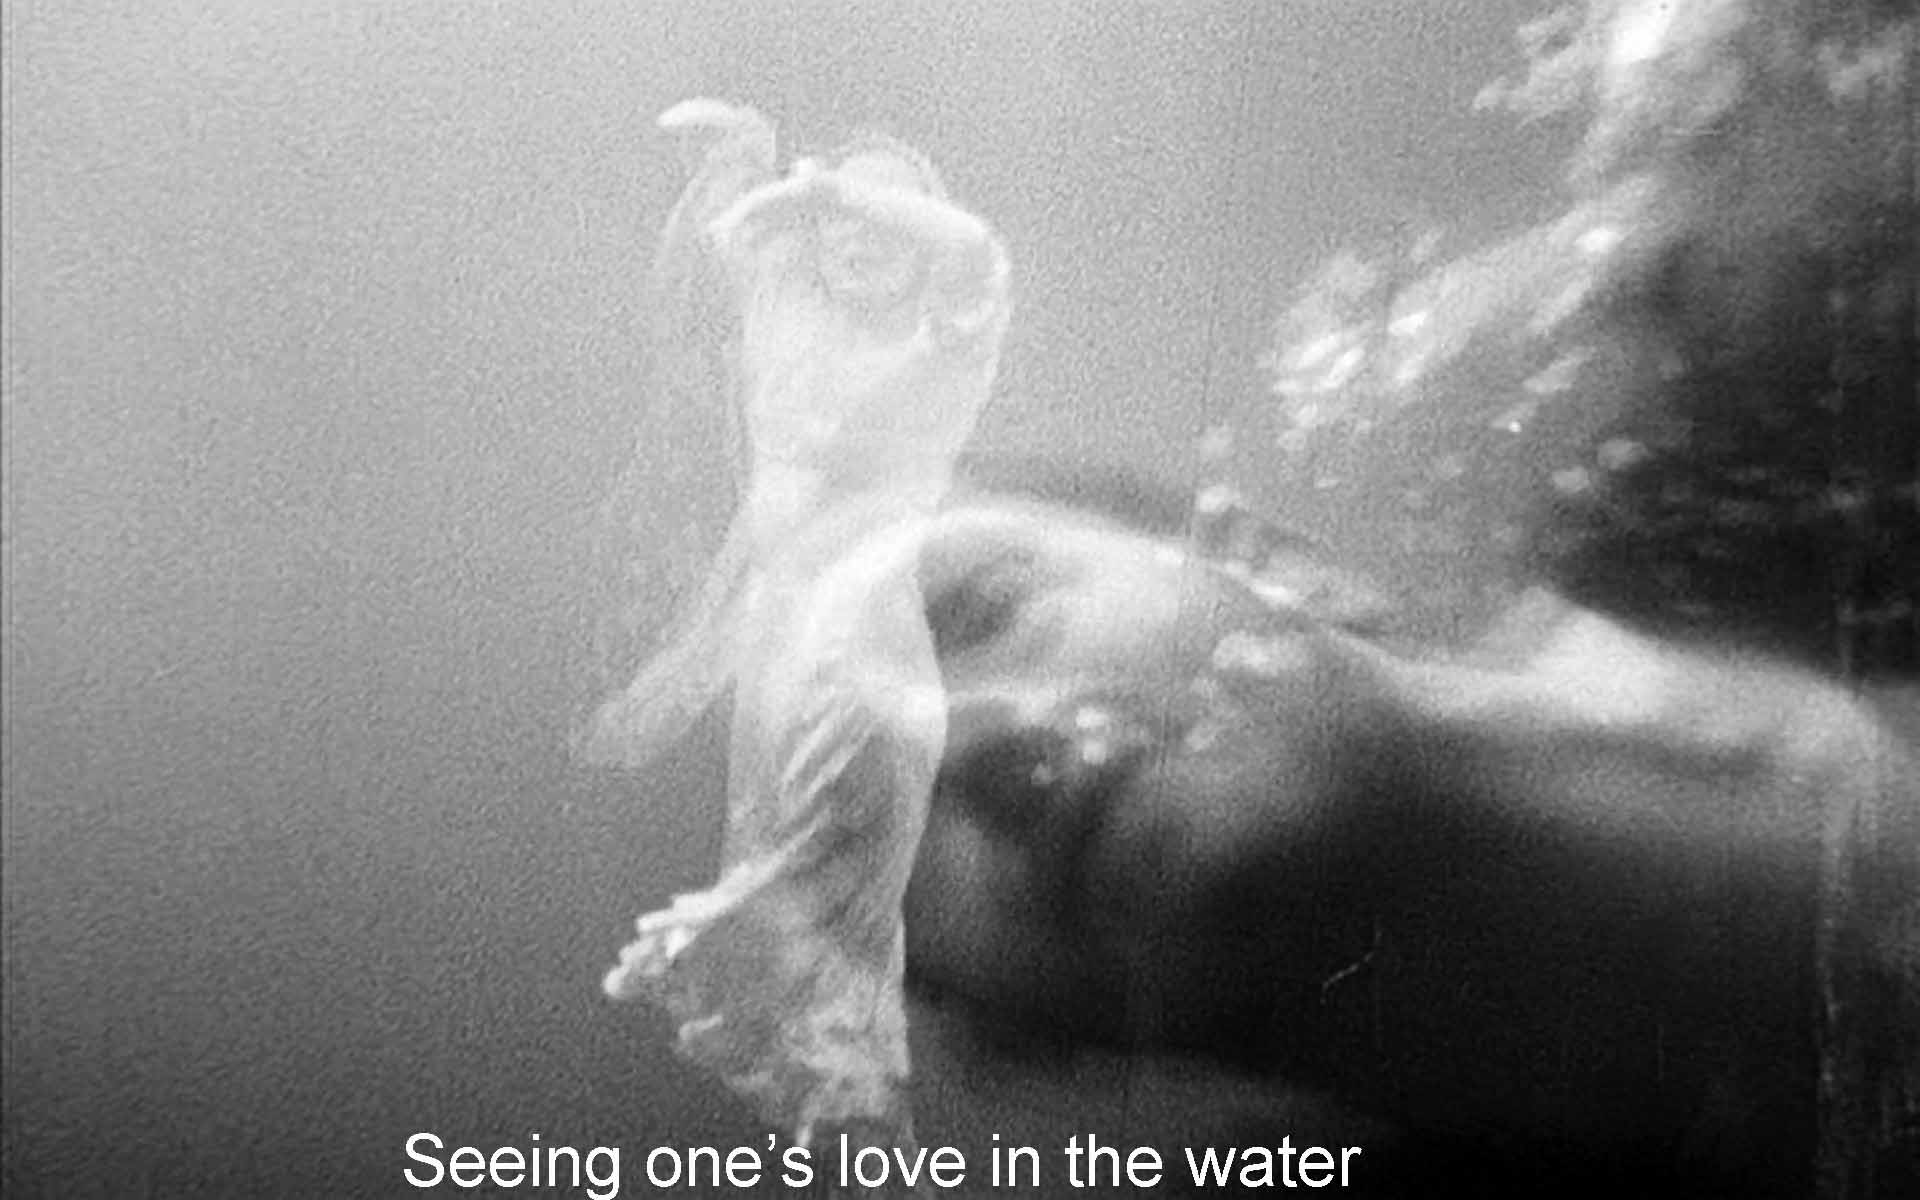 Seeing one's love in the water